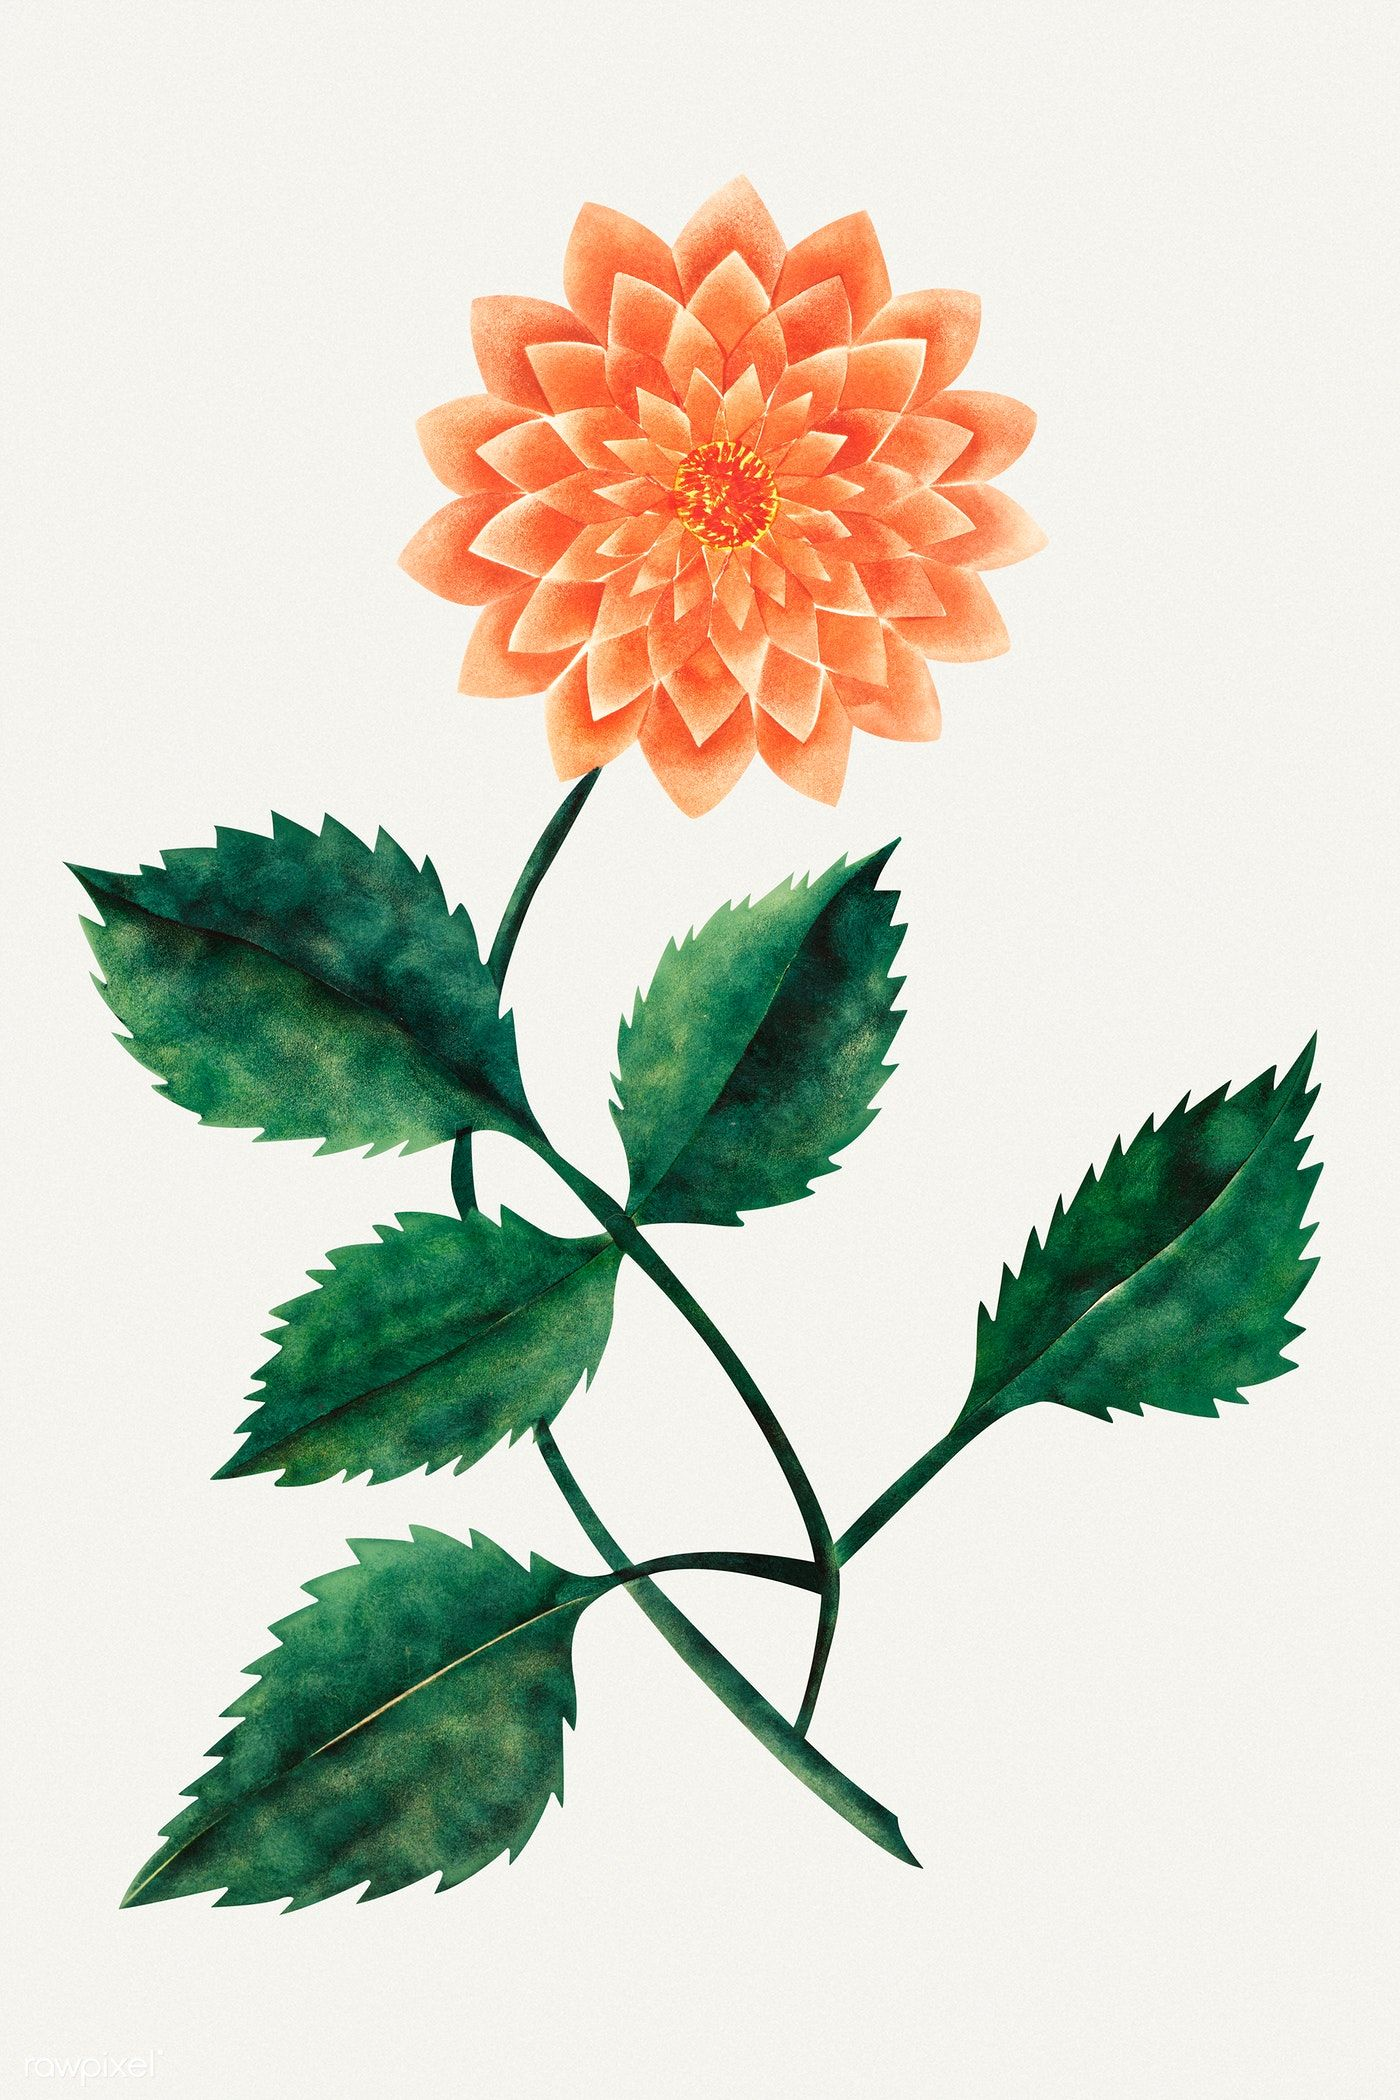 Download Premium Illustration Of Dahlia Flower Vintage Illustration 2206370 In 2020 Vintage Illustration Vintage Flowers Dahlia Flower